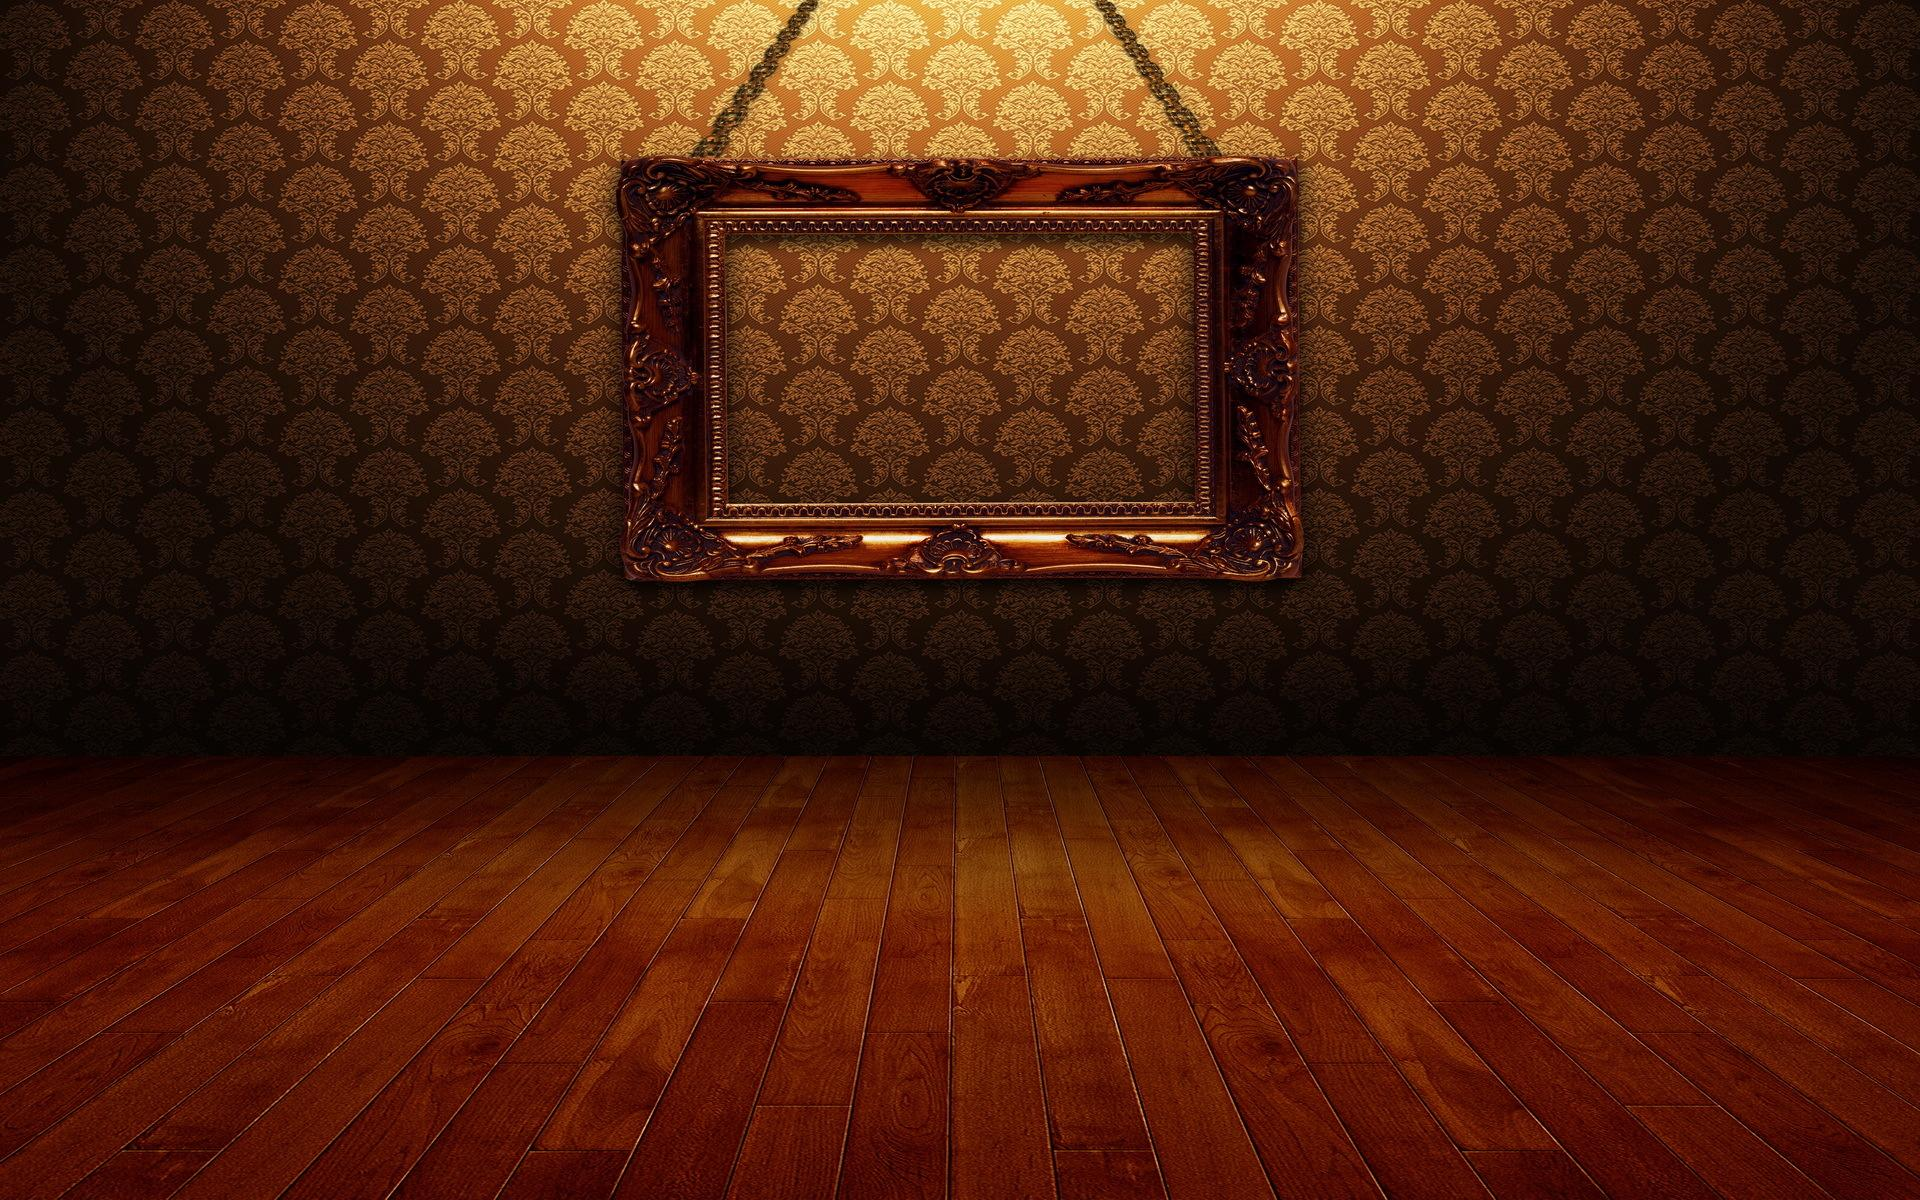 Pictures On The Wall Hd Golden Photo Frame On The Wall Wallpaper Download